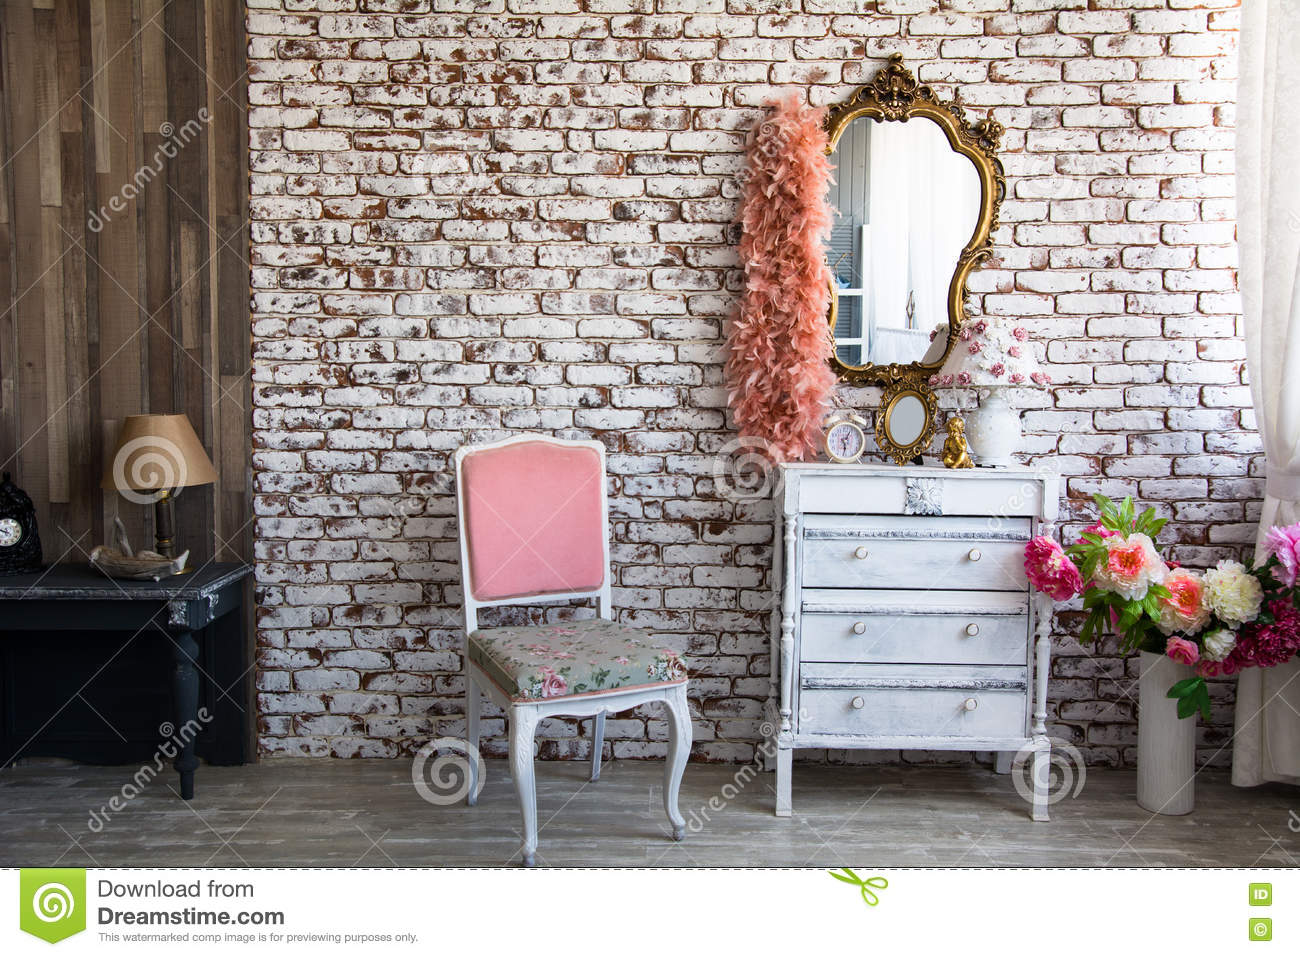 Interior Room With A Brick Wall Stock Image Image Of Frame